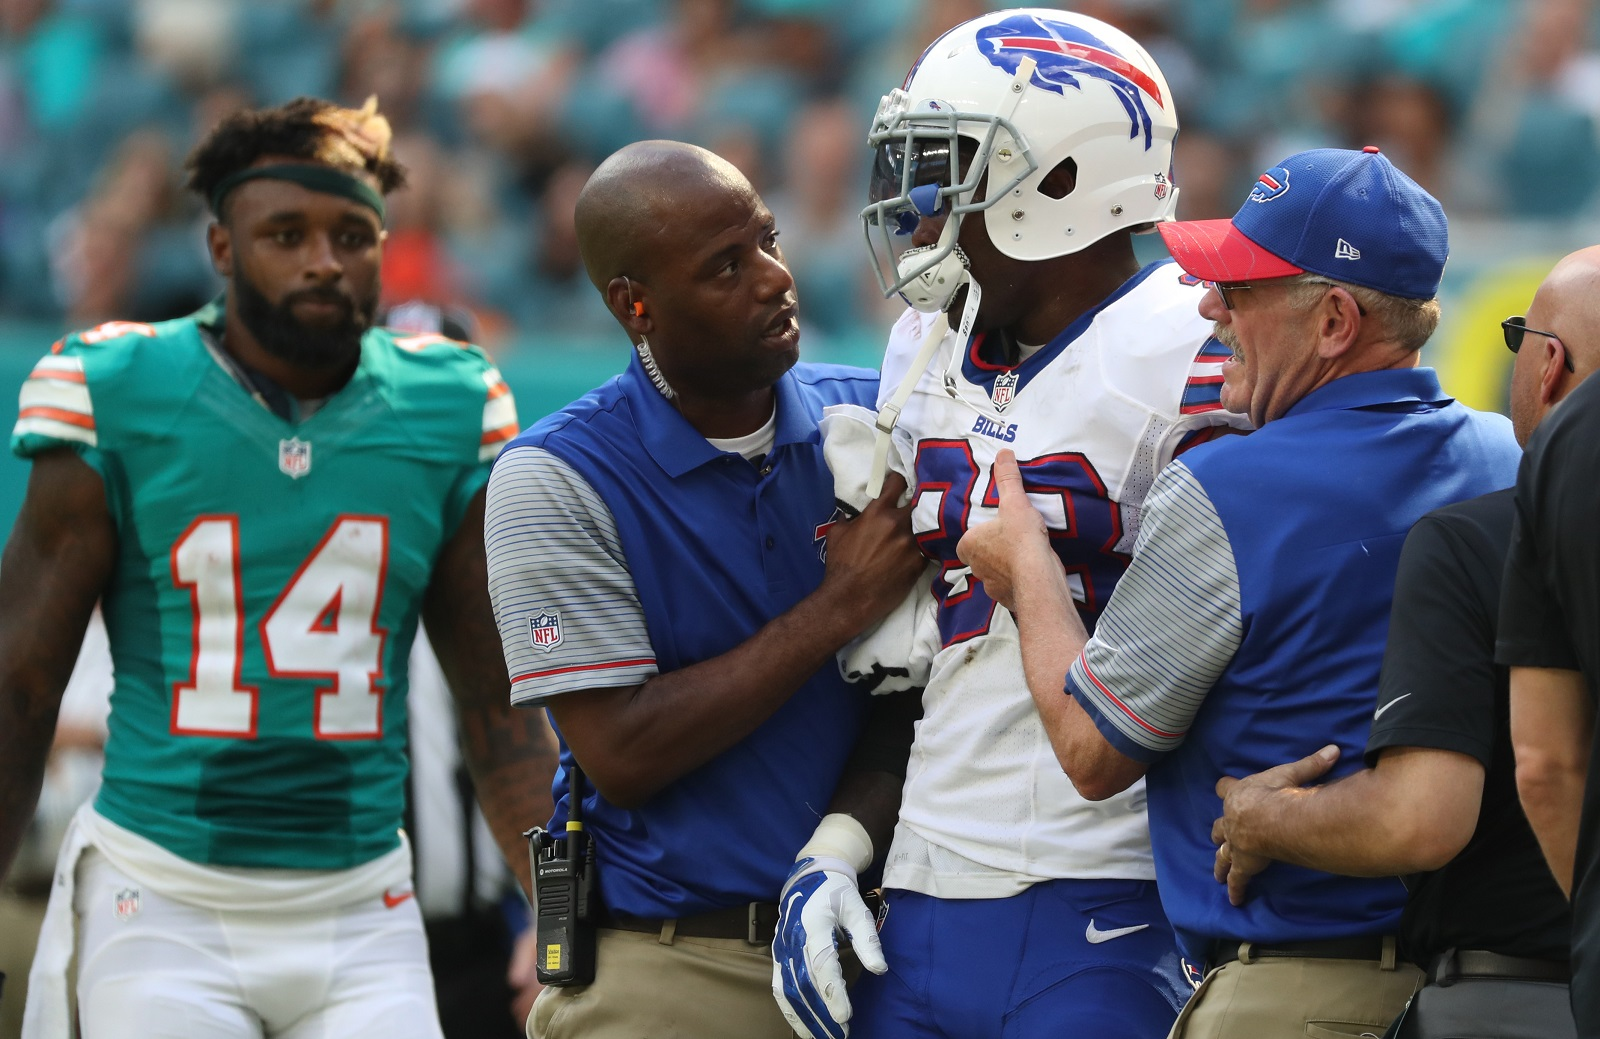 Buffalo Bills strong safety Aaron Williams is helped off the field as Jarvis Landry looks on.  (James P. McCoy/Buffalo News)